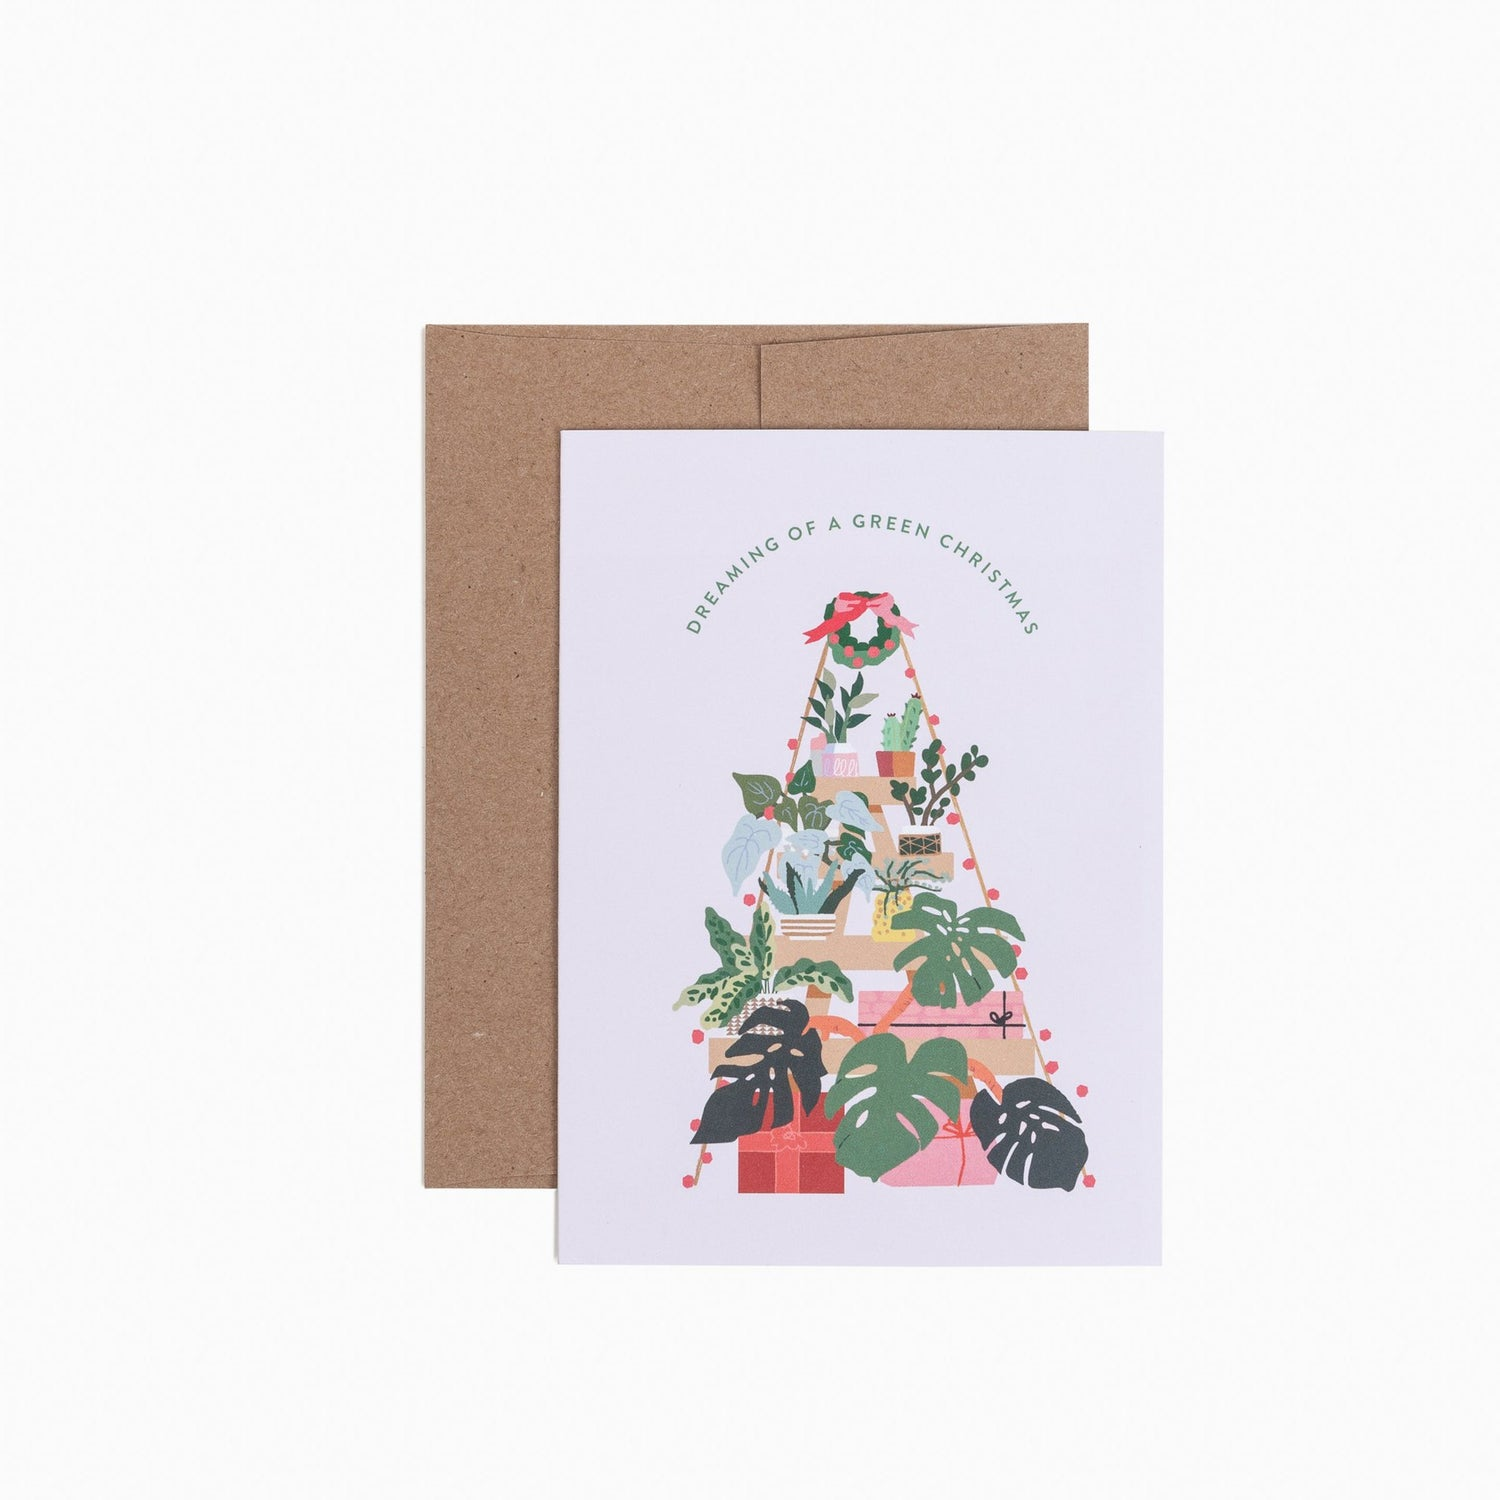 Dreaming of a Green Christmas Card. Compendium Design Store, Fremantle. AfterPay, ZipPay accepted.